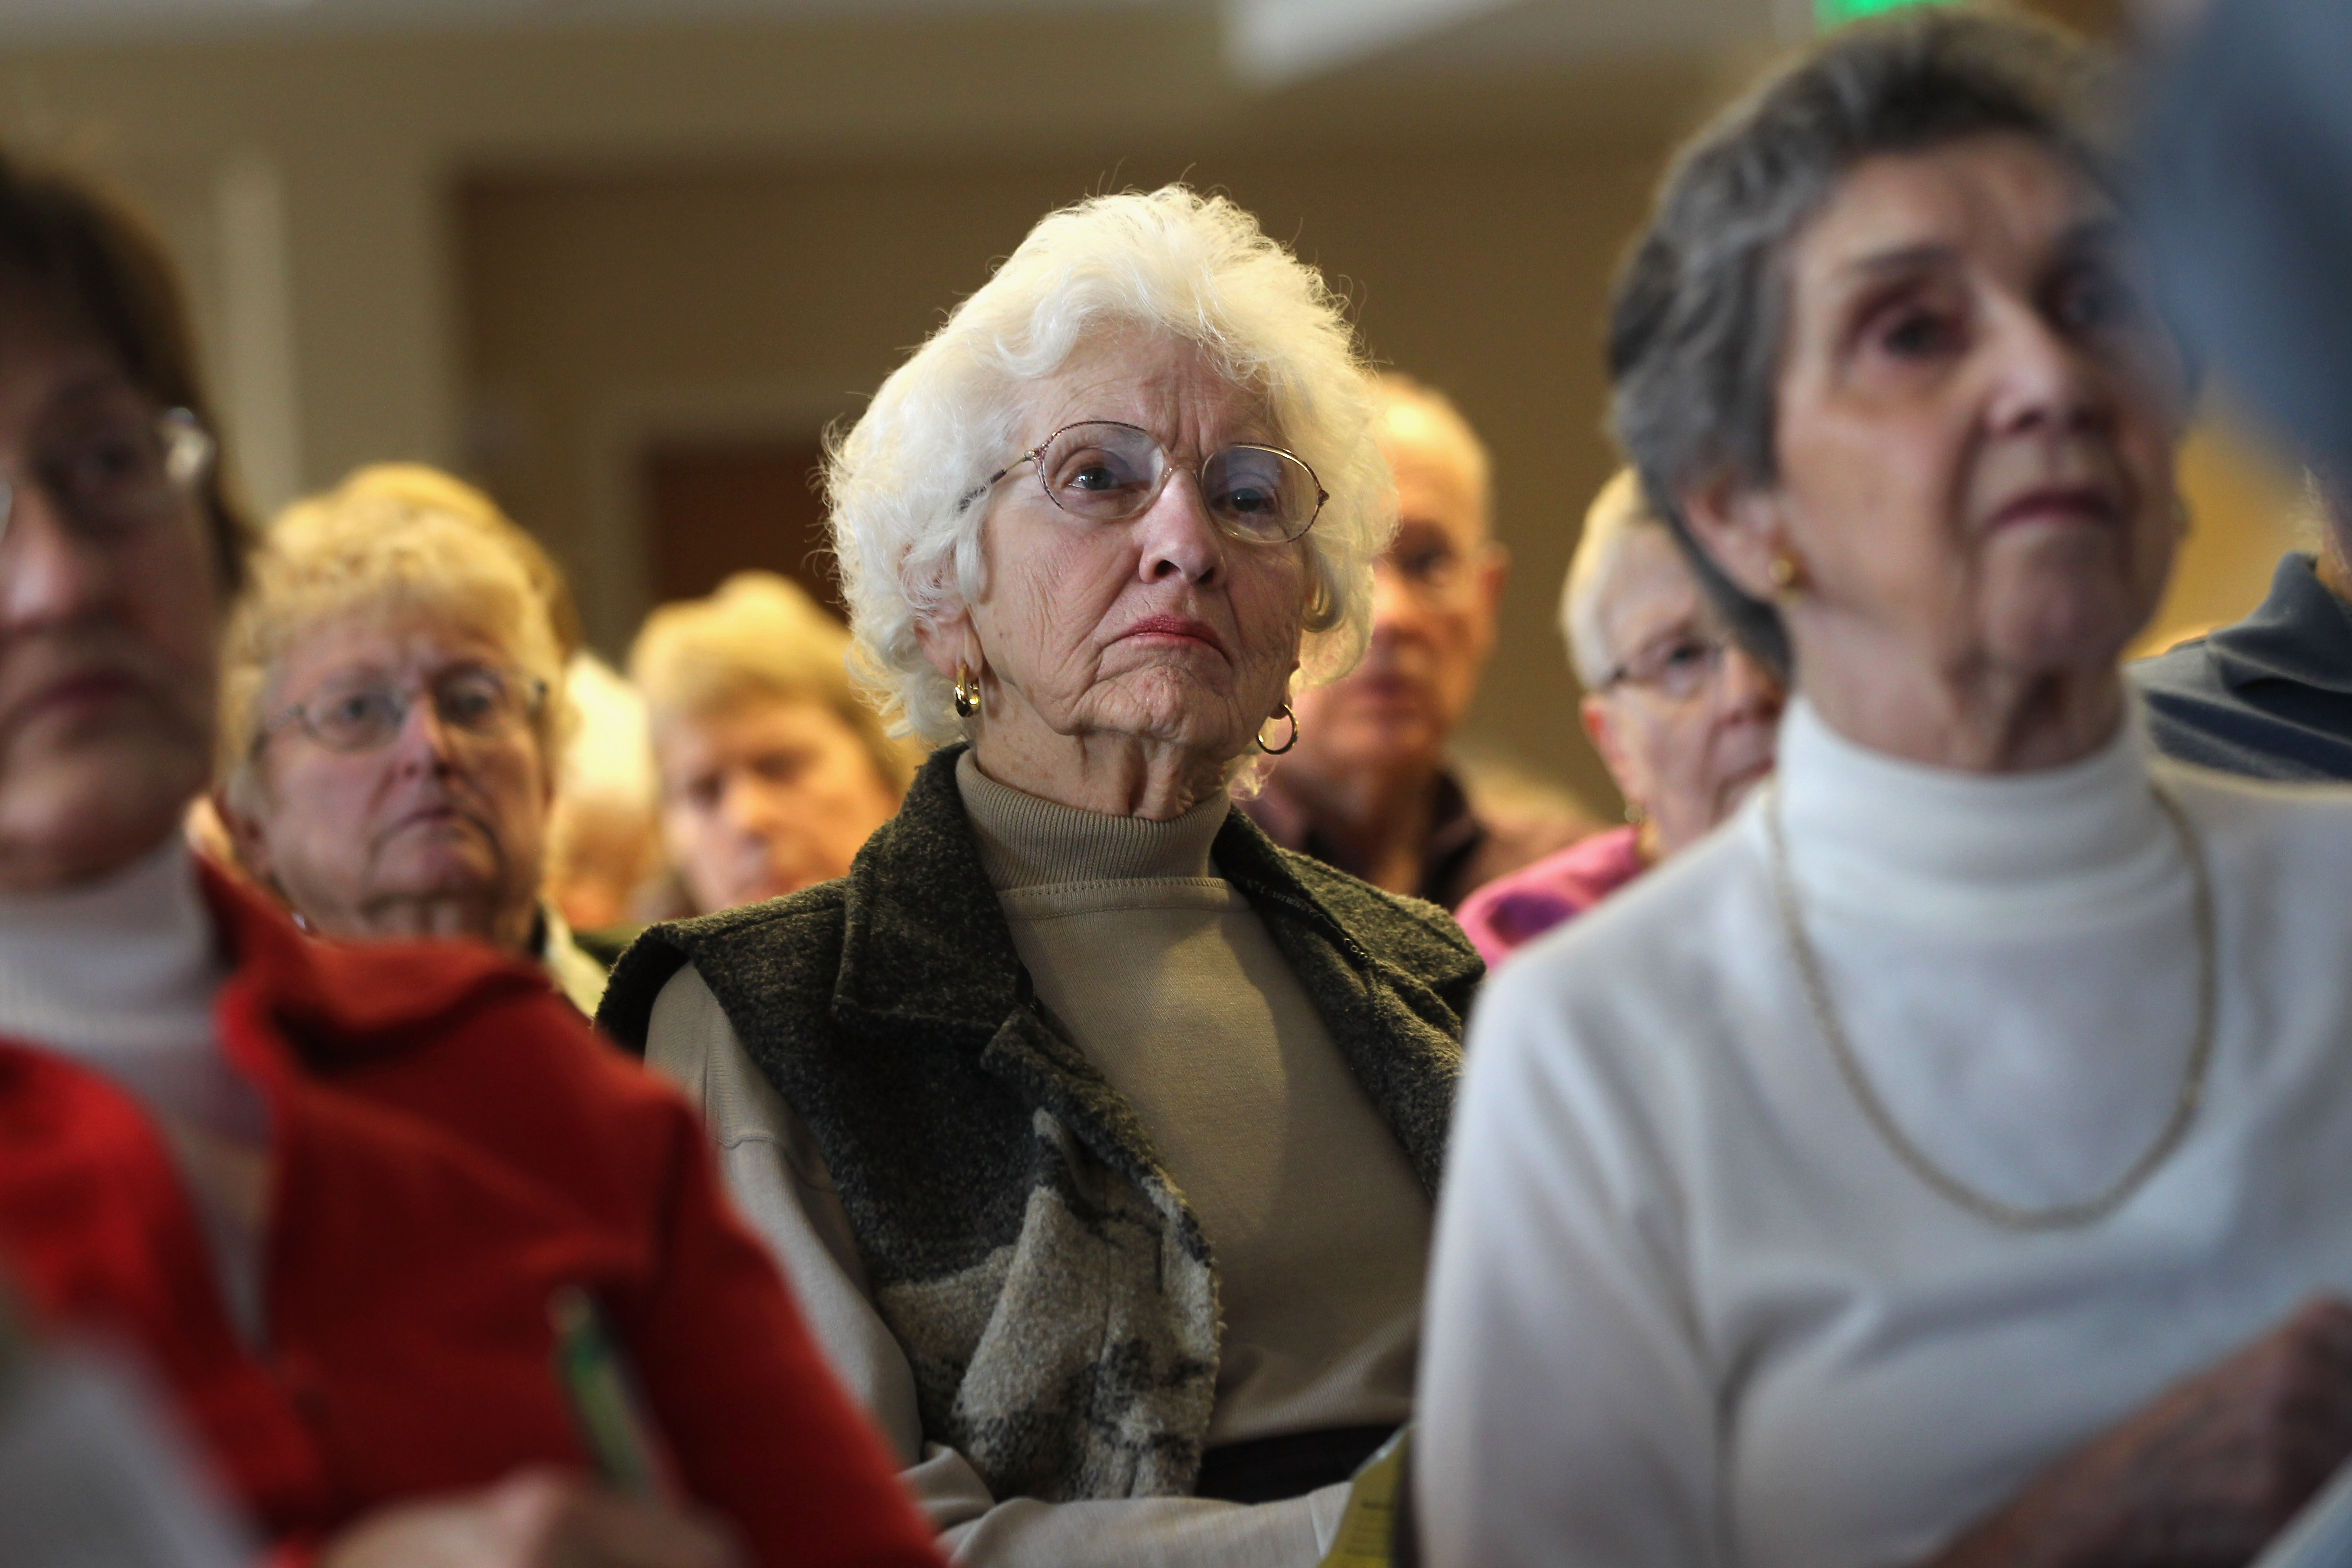 Seniors Are Educated On How Health Care Reform Will Affect Their Medicare